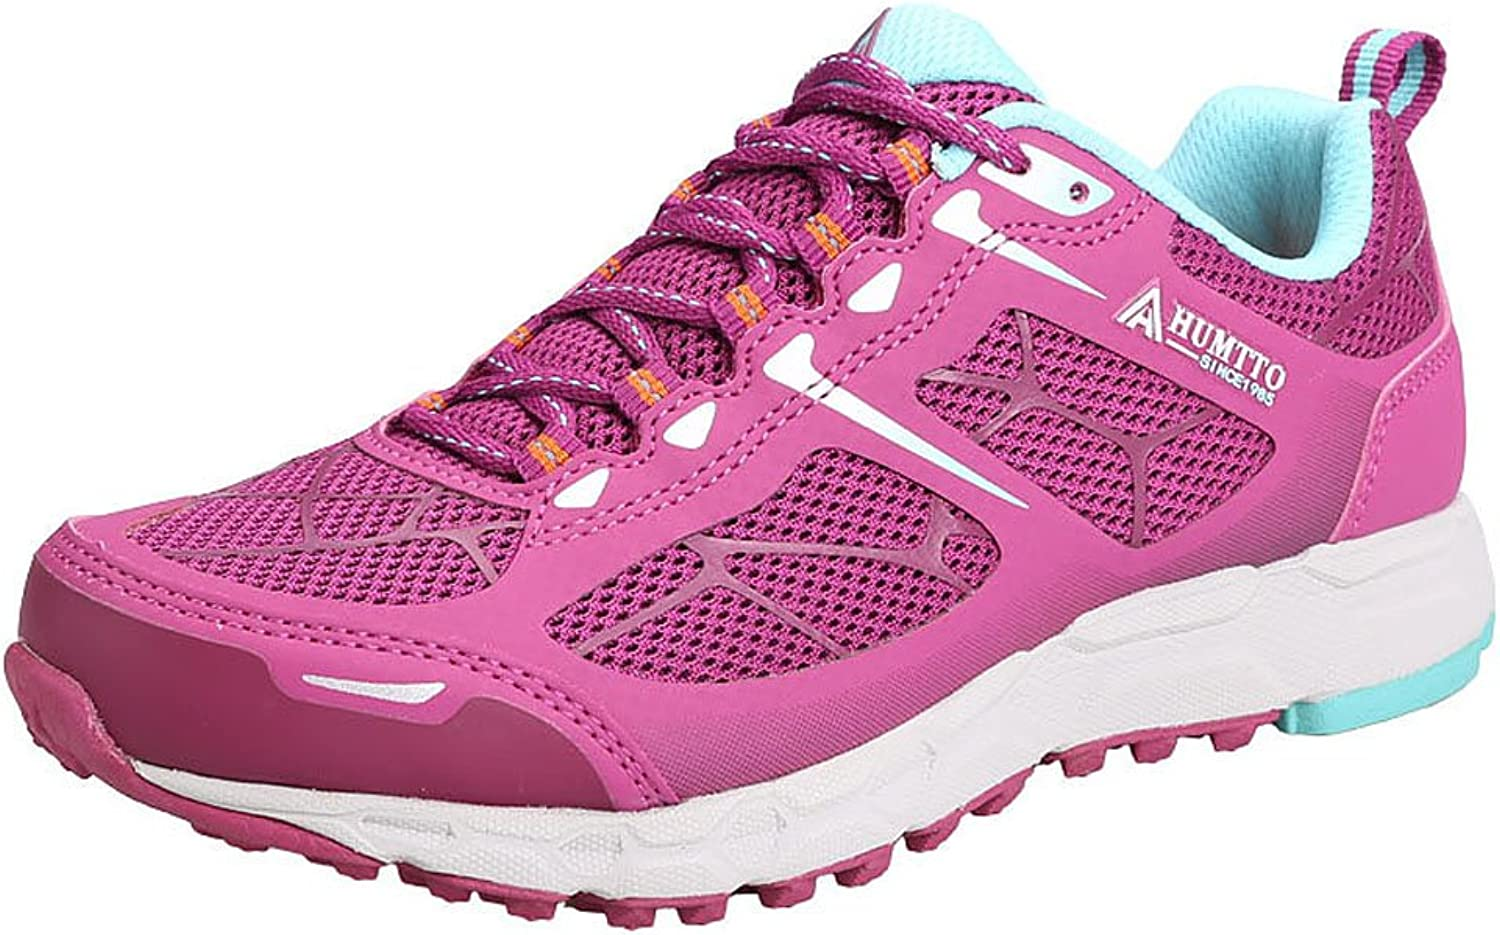 Sunjcs Cushioning Running shoes Grid Excursion Sports Sneakers Trail Runner